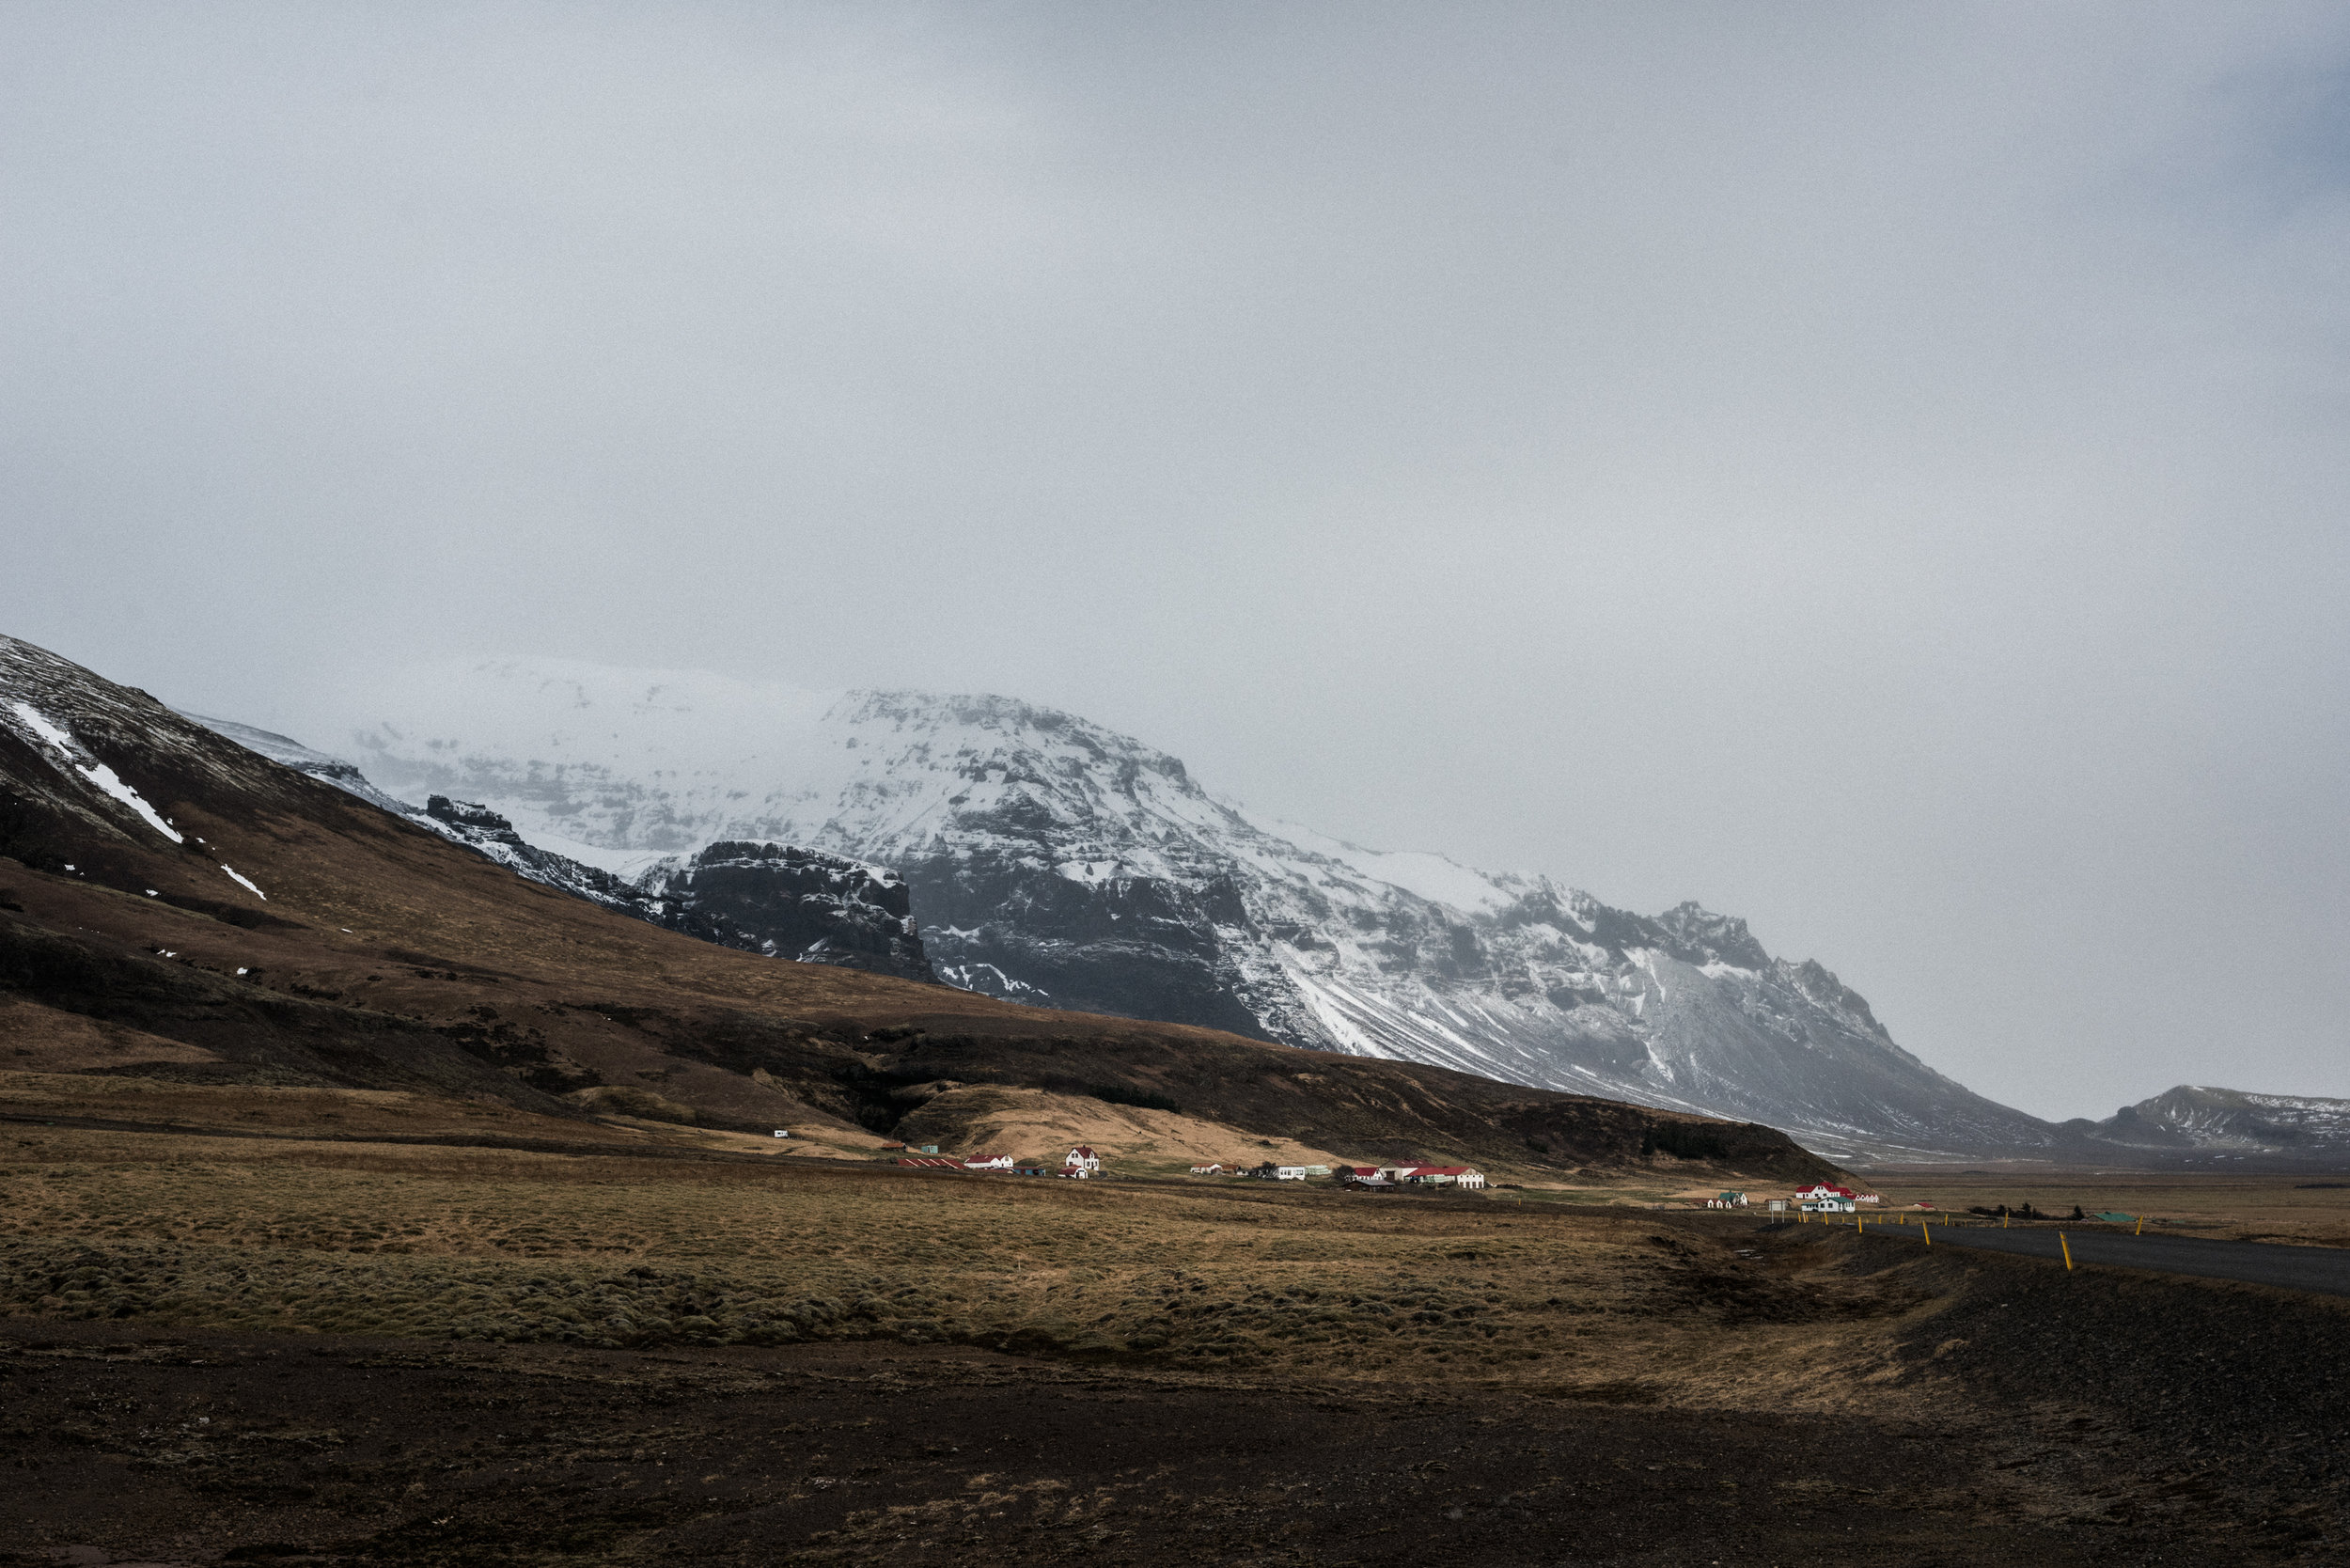 ICELAND_WOMAN_PHOTOGRAPHER_TARASHUPE_OUTDOOR_PHOTOGRAPHY_106.jpg